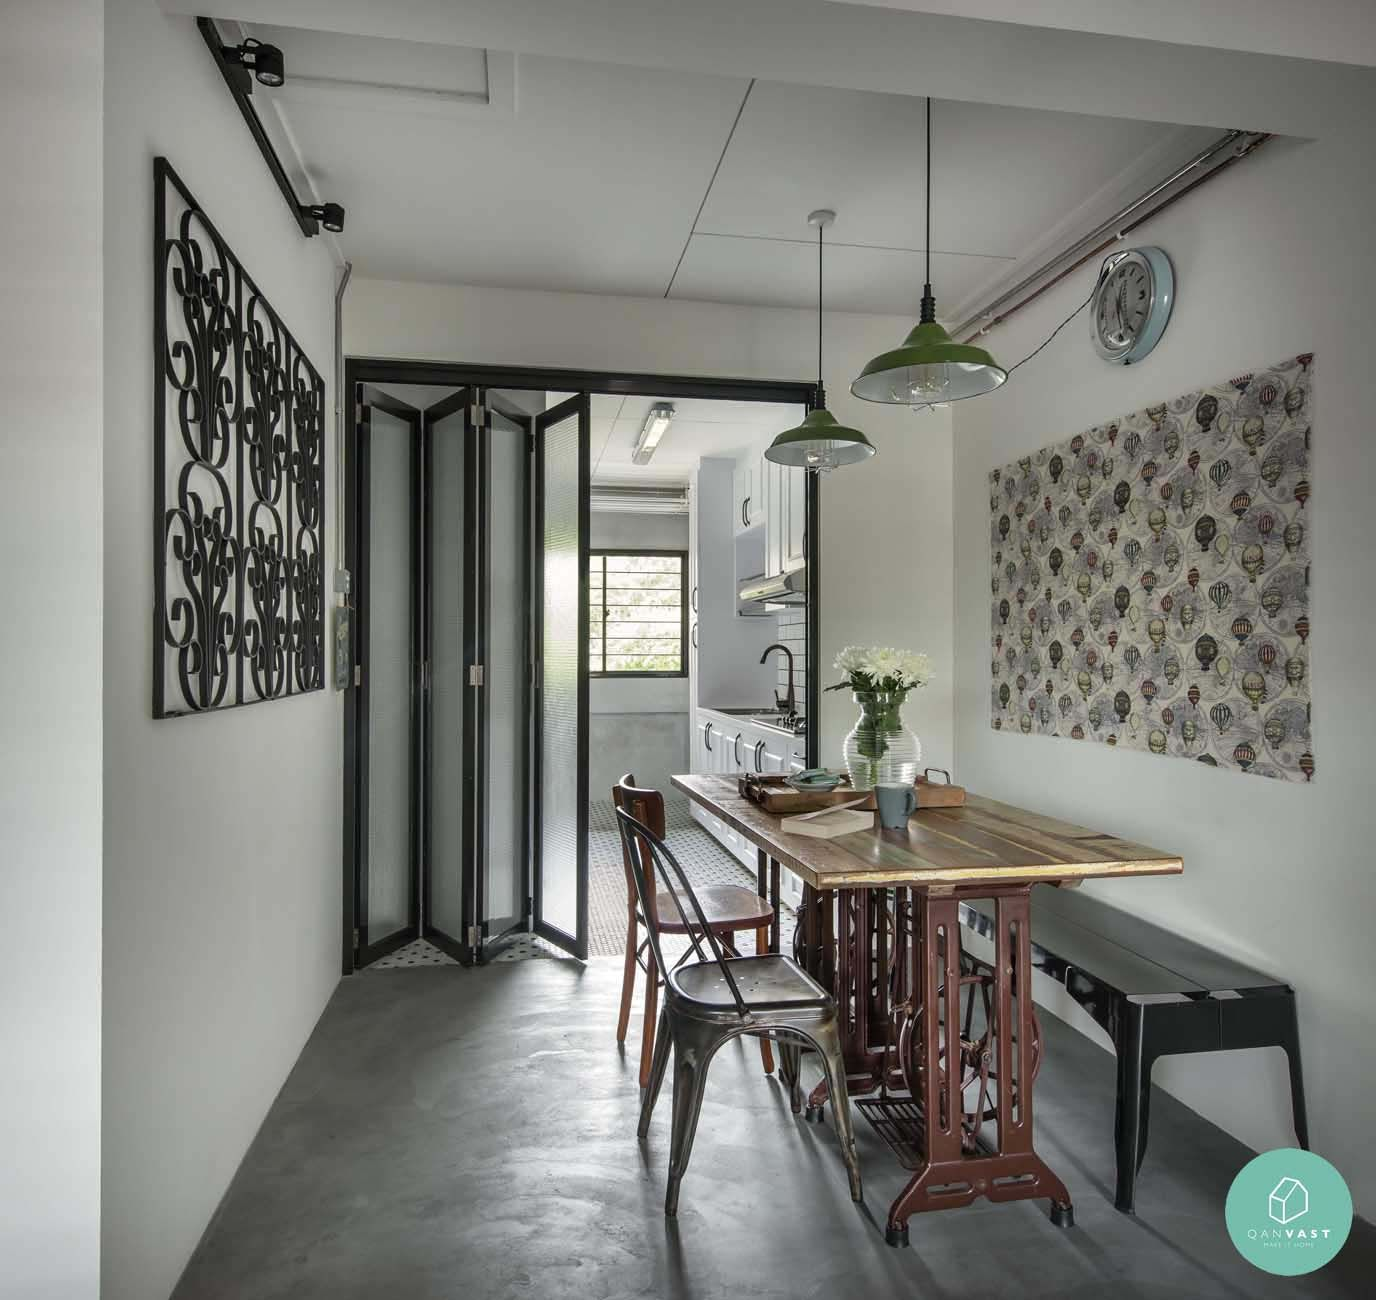 Home Design Ideas For Hdb Flats: 10 Beautiful Home Renovations Under $50,000